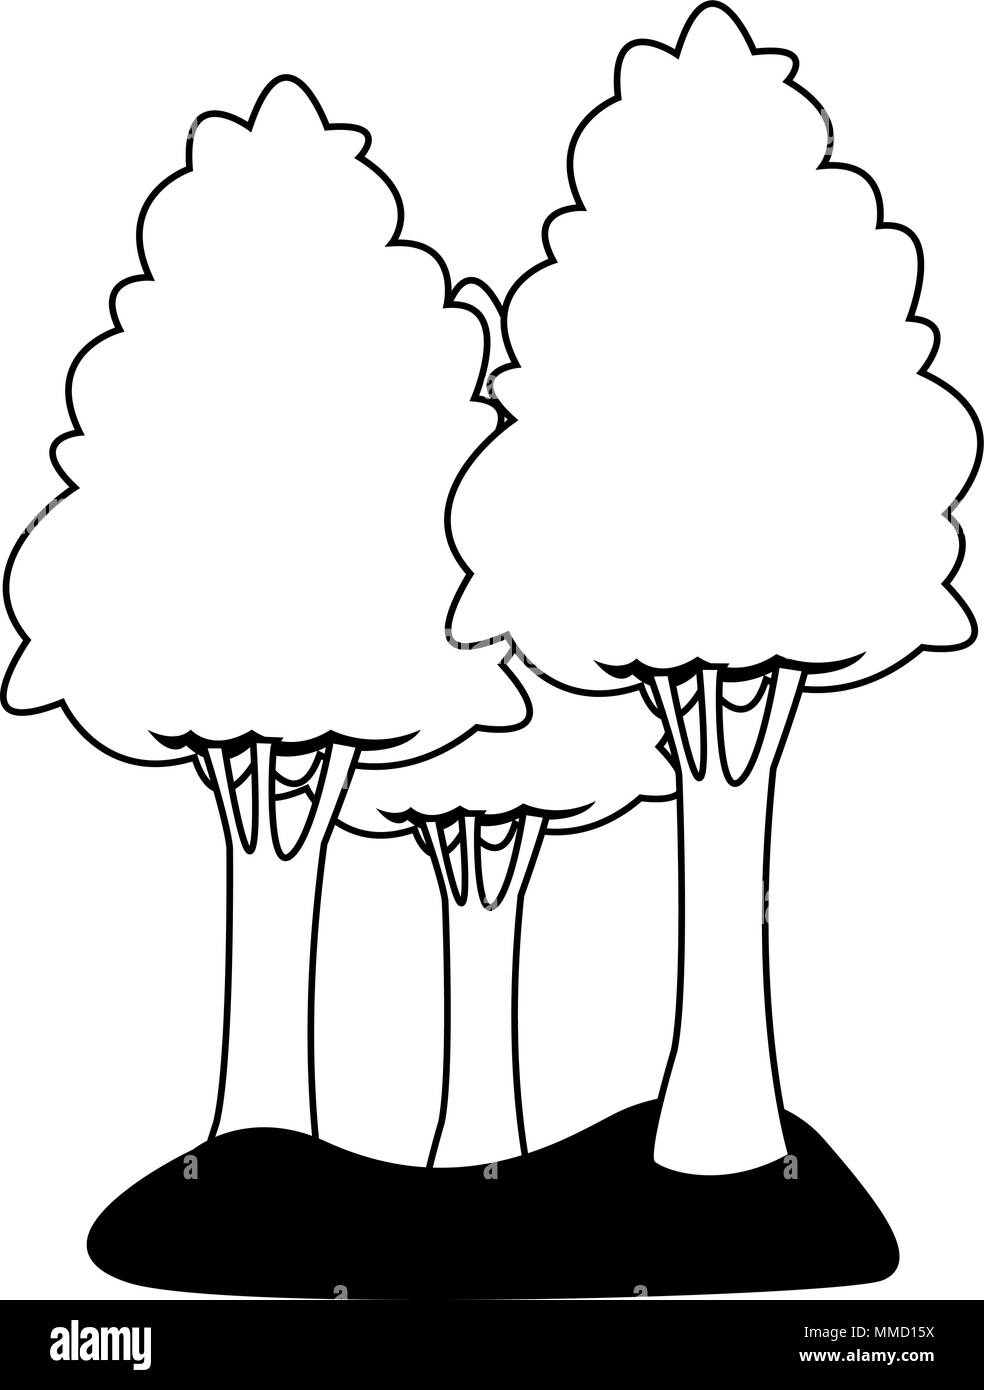 Cartoon Trees Black And White Stock Photos Images Alamy